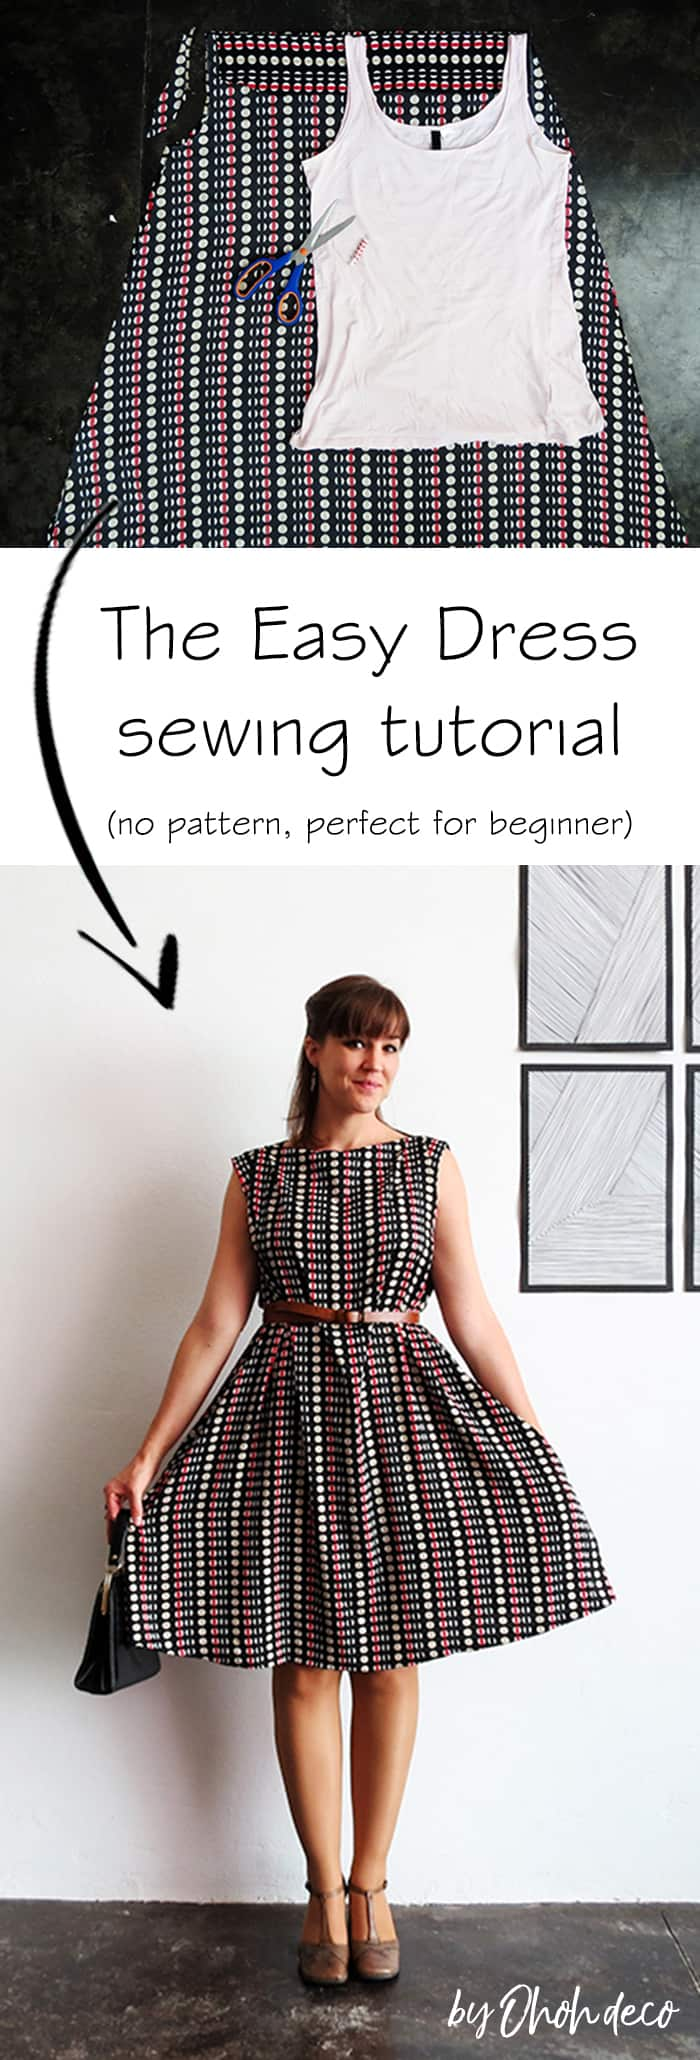 the easy dress sewing tutorial